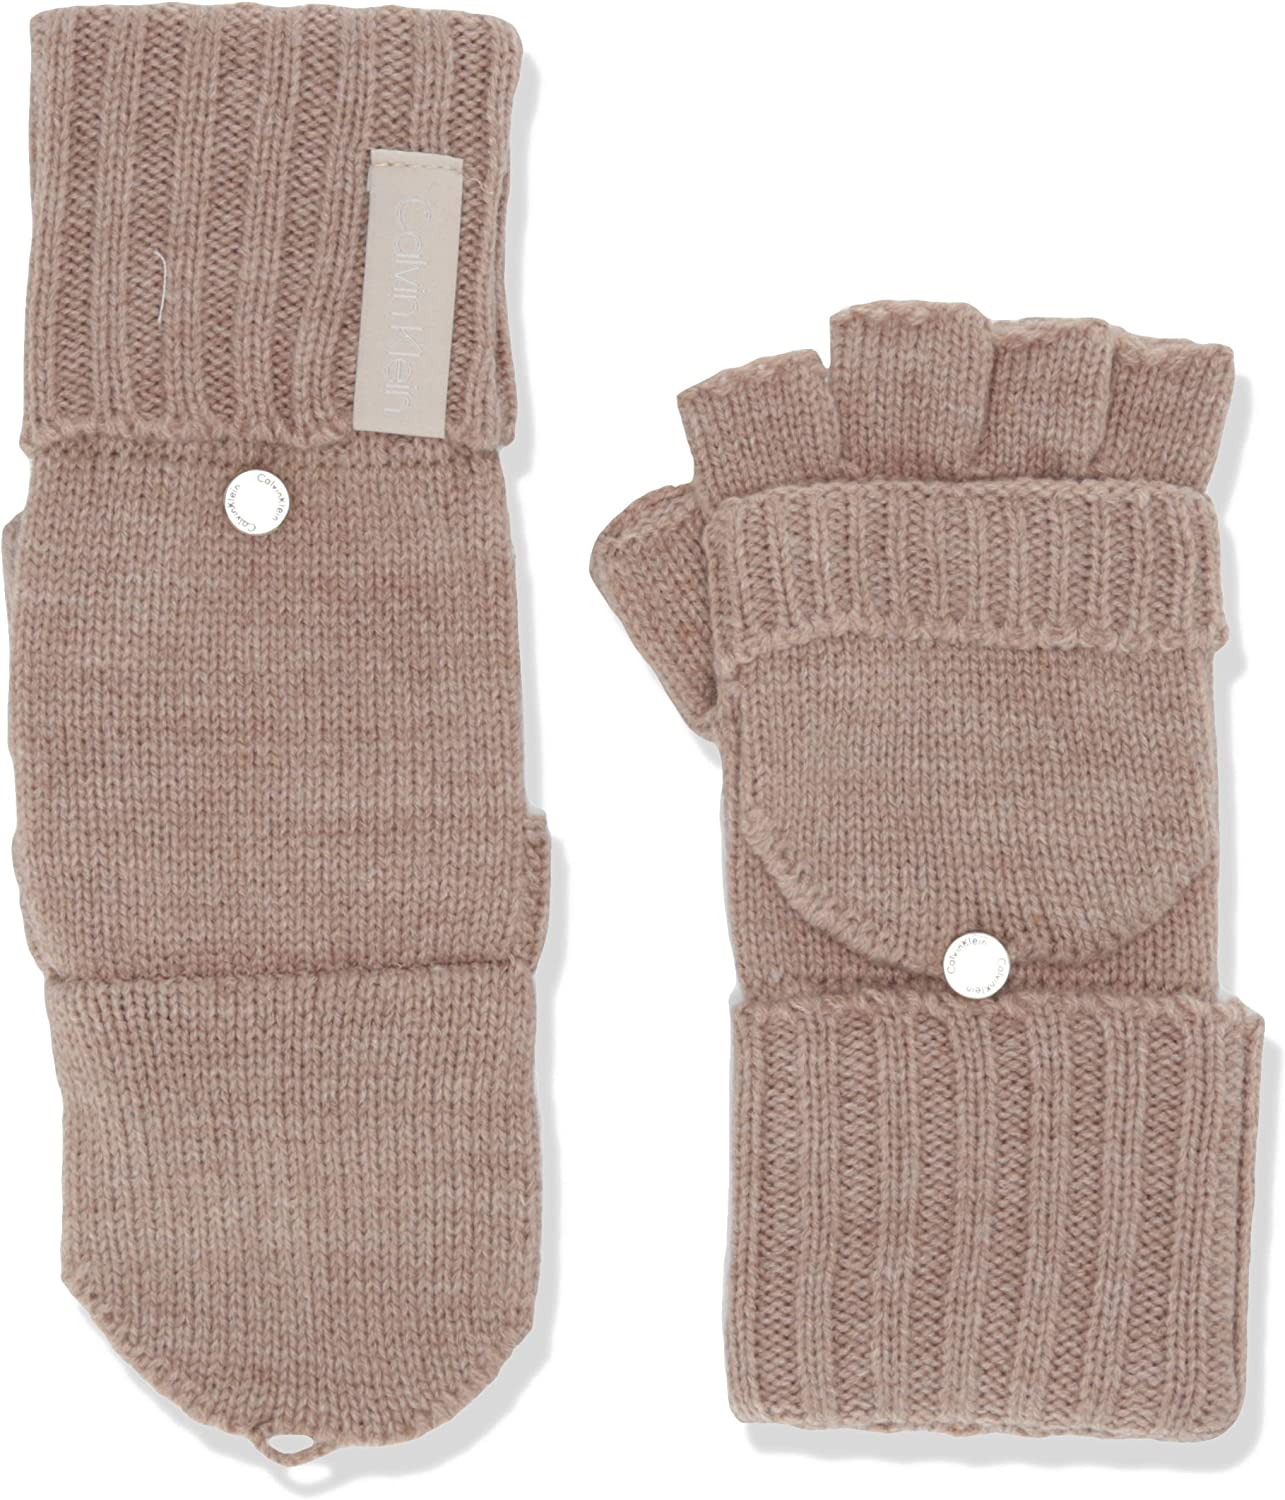 Calvin Klein womens Knitted Convertible Fingerless Gloves With Mitten Flap Cover